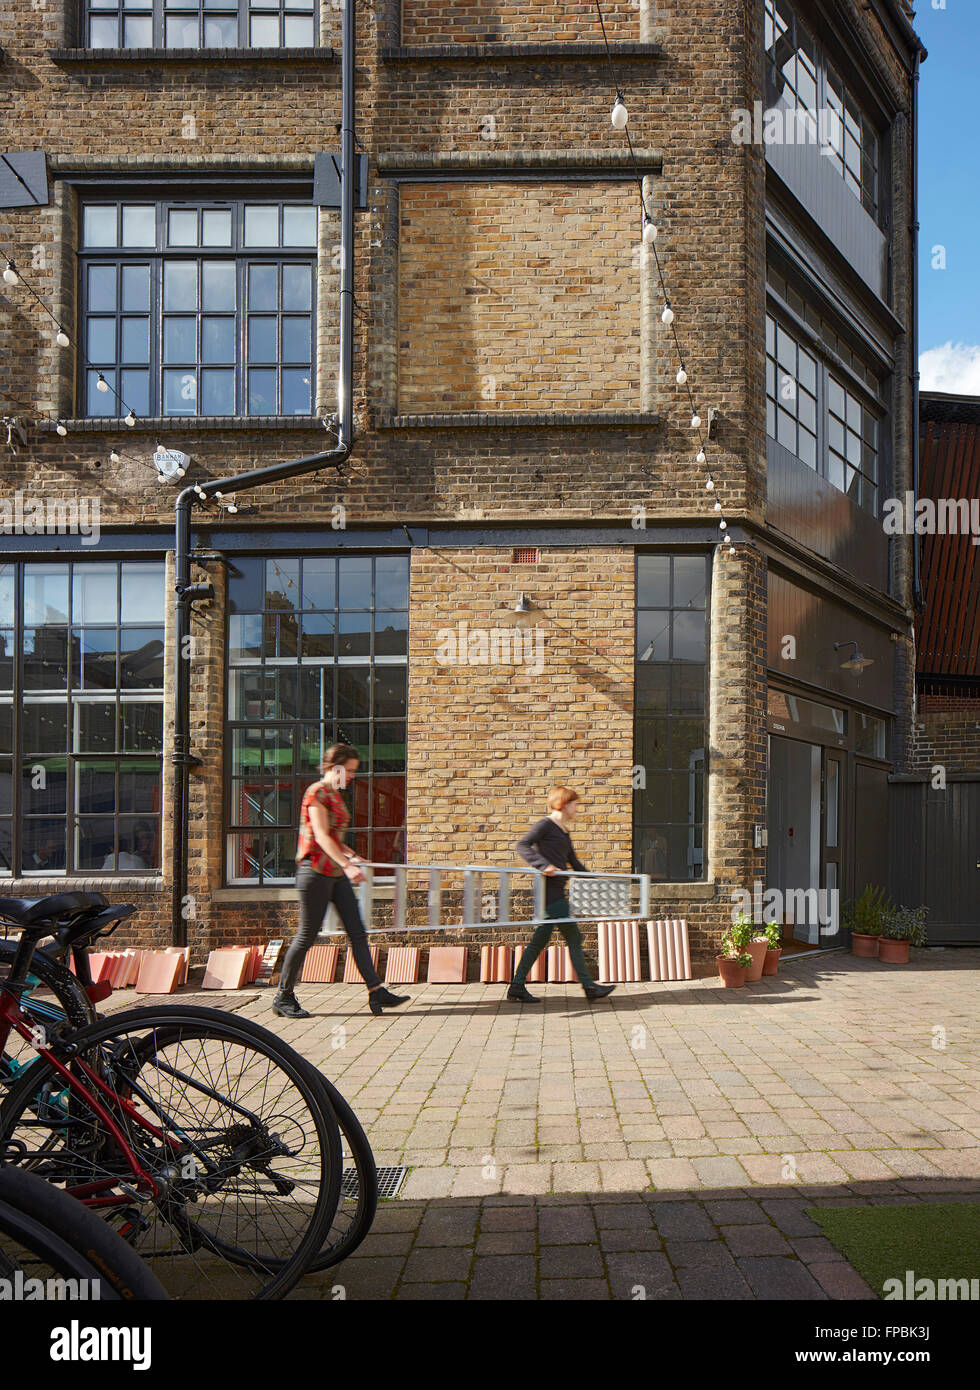 Studio yard and Victorian facade. DSDHA architectural office, London, United Kingdom. Architect: DSDHA, 2015. - Stock Image